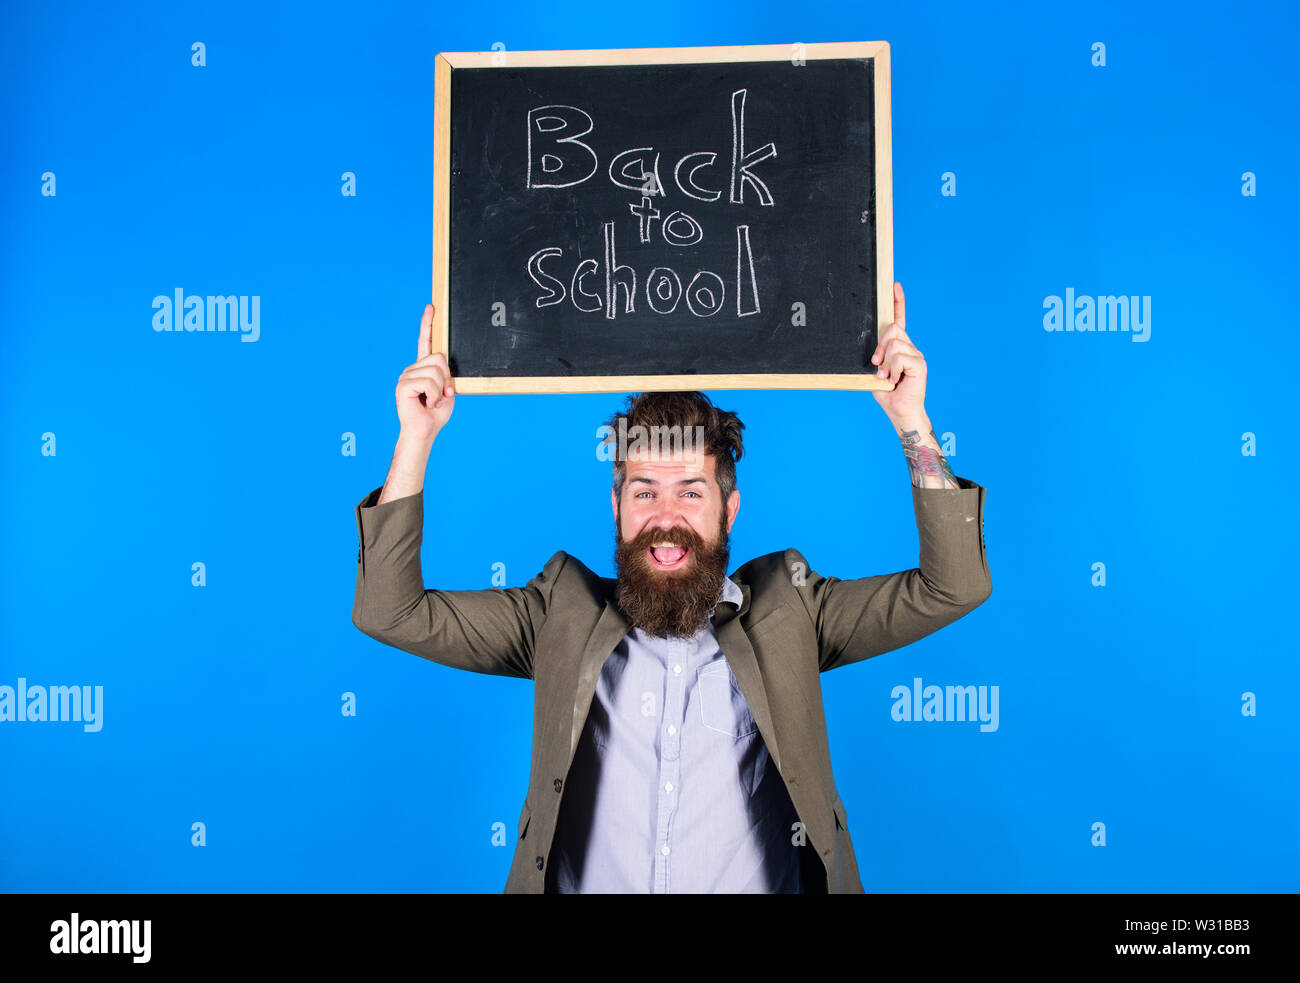 Teacher bearded man holds blackboard with inscription back to school blue background. Teaching stressful occupation. Do not be upset. Teacher with tousled hair stressful about school year beginning. - Stock Image